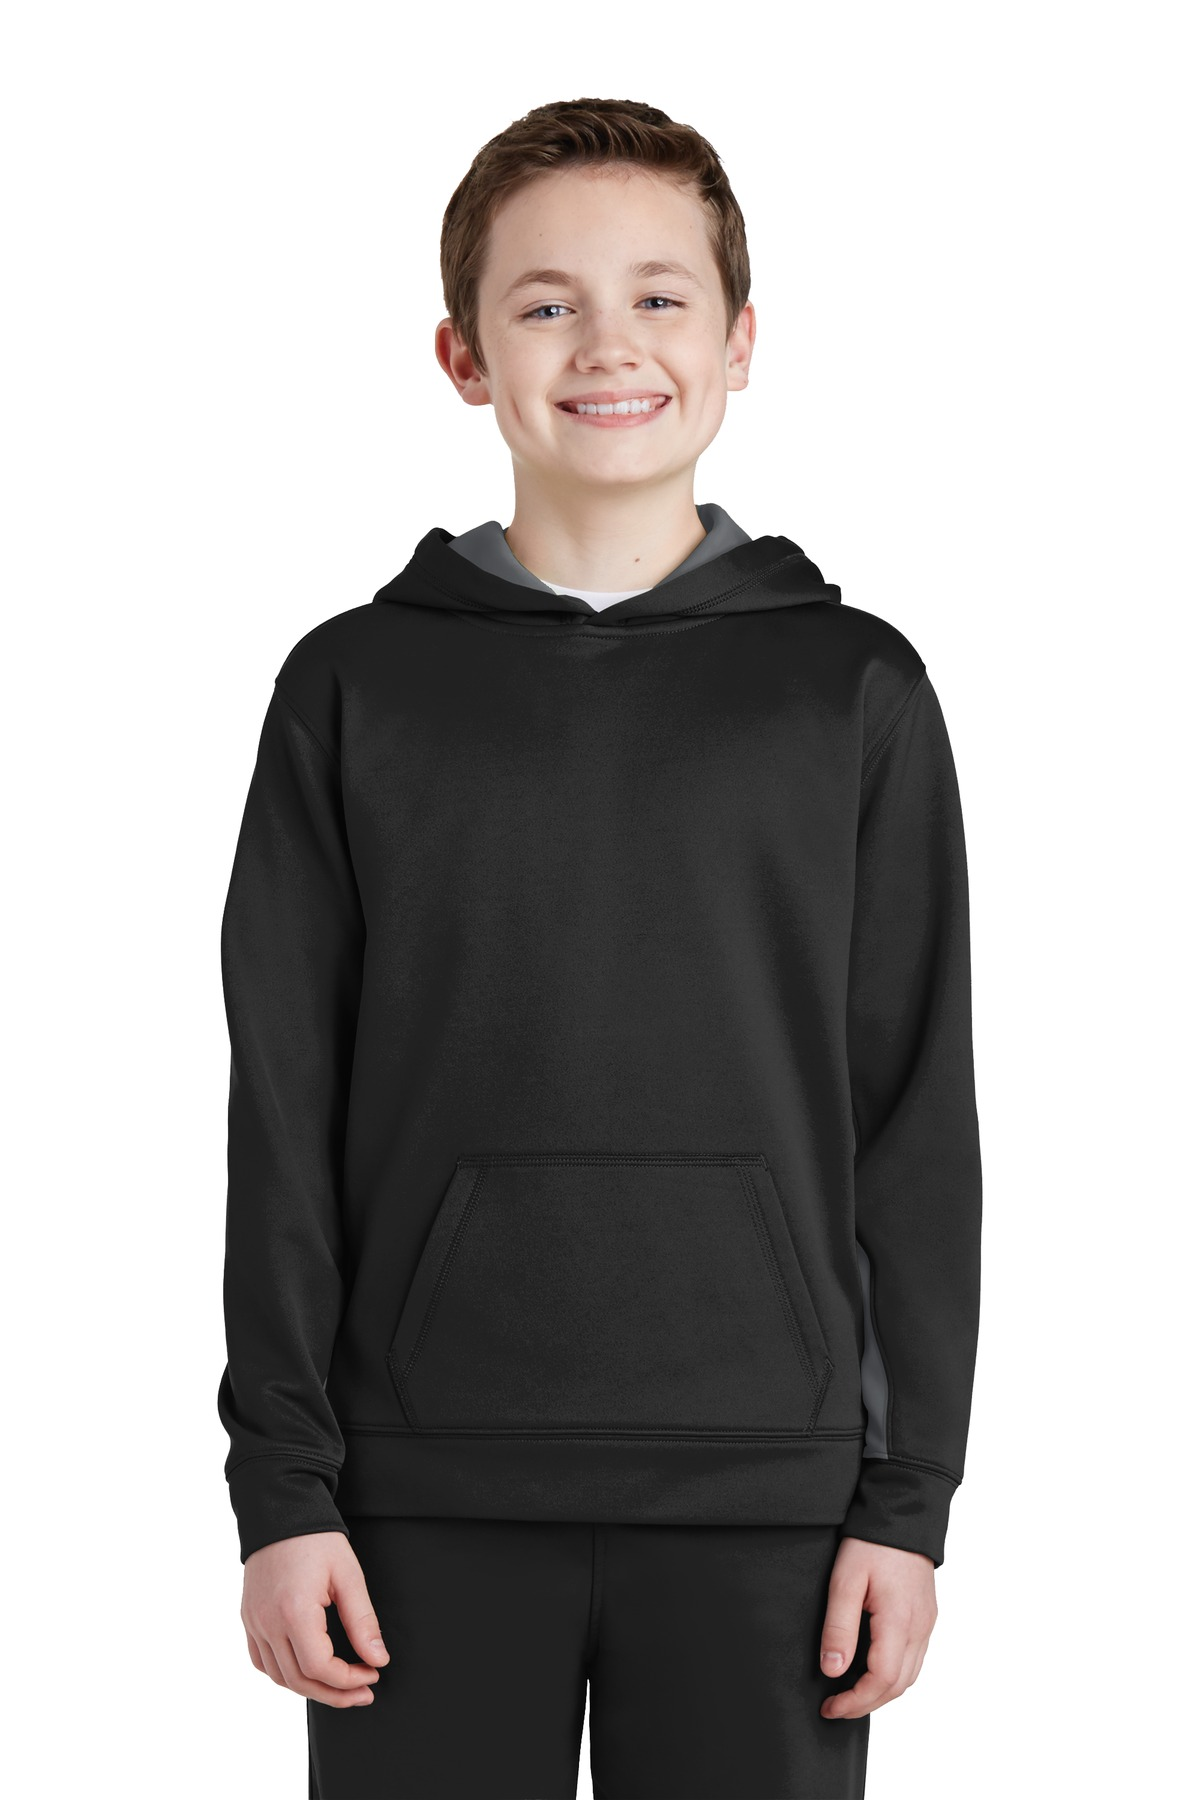 Sport-Tek ®  Youth Sport-Wick ®  Fleece Colorblock Hooded Pullover.  YST235 - Black/ Dark Smoke Grey